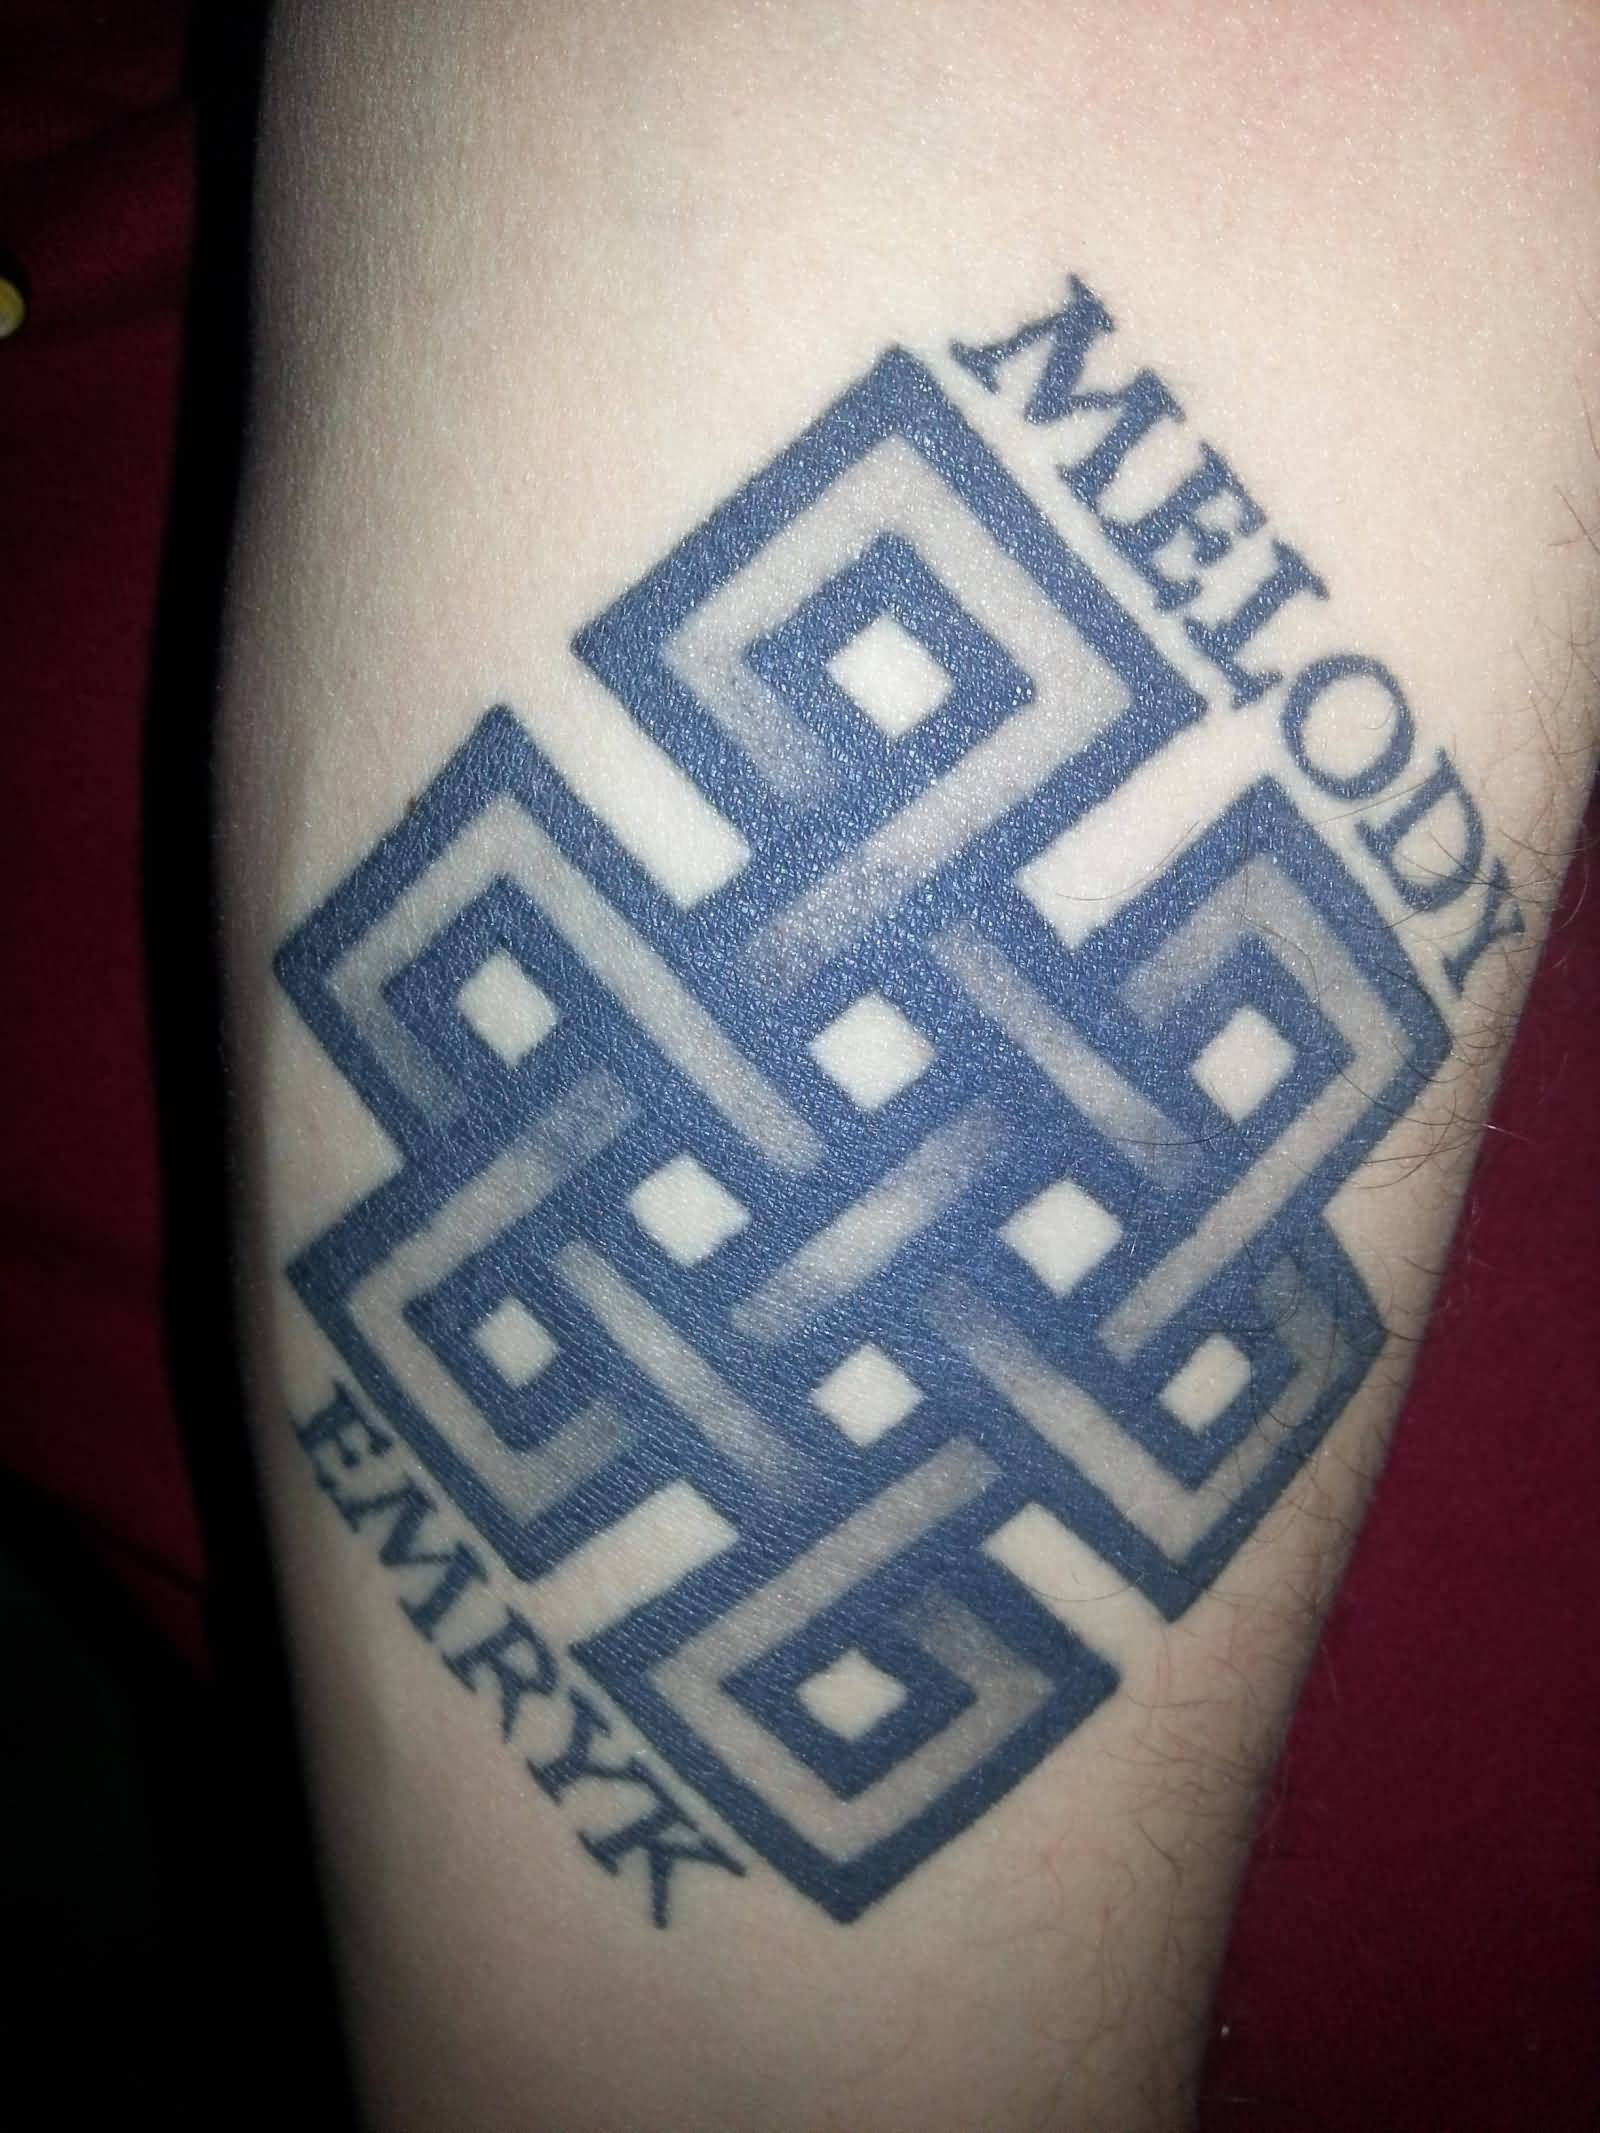 Grey Ink Amazing Endless Knot Tattoo Design Idea With Nice Text